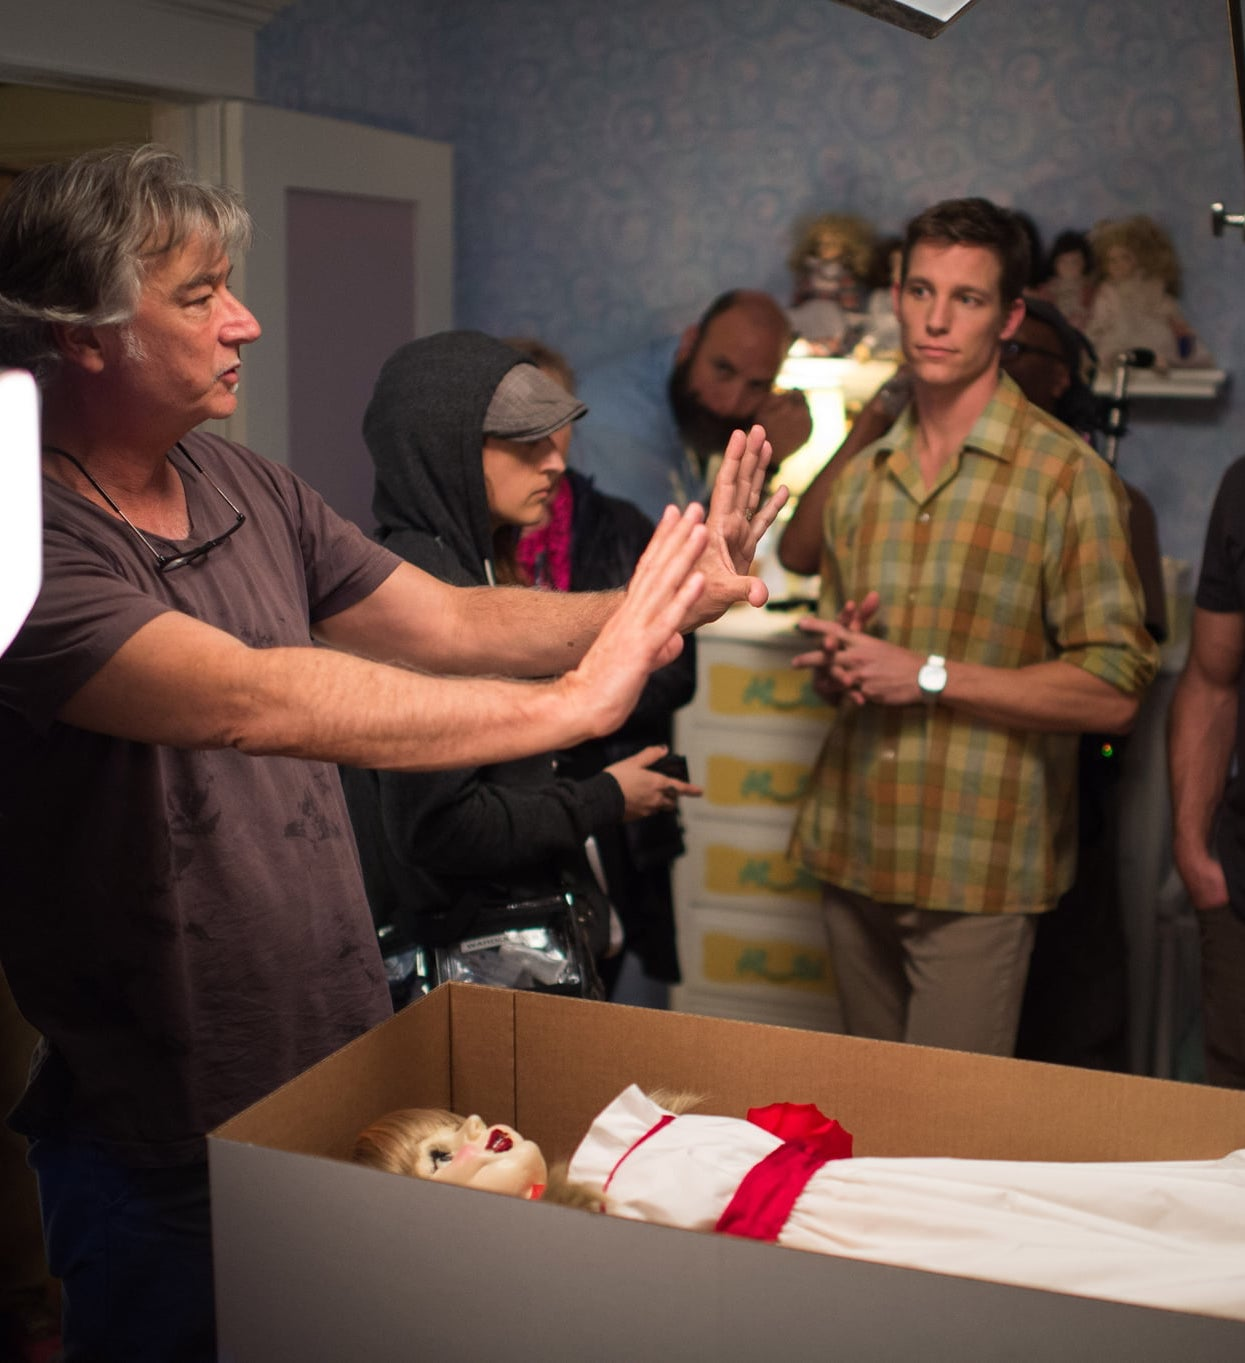 Annabelle Unexplainable Things That Happened On Movie Sets